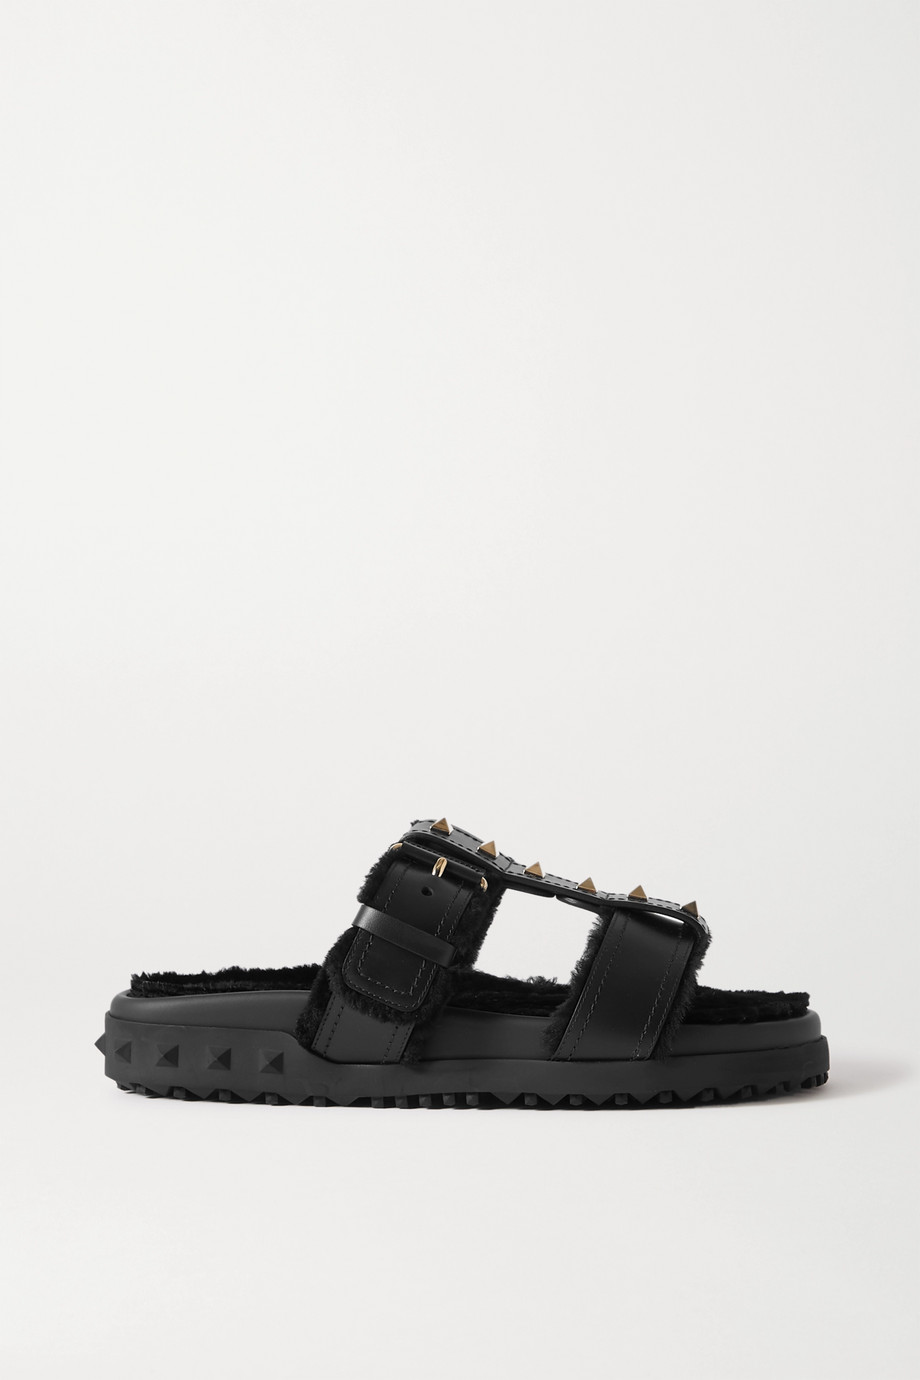 Valentino Valentino Garavani Rockstud shearling-lined leather slides